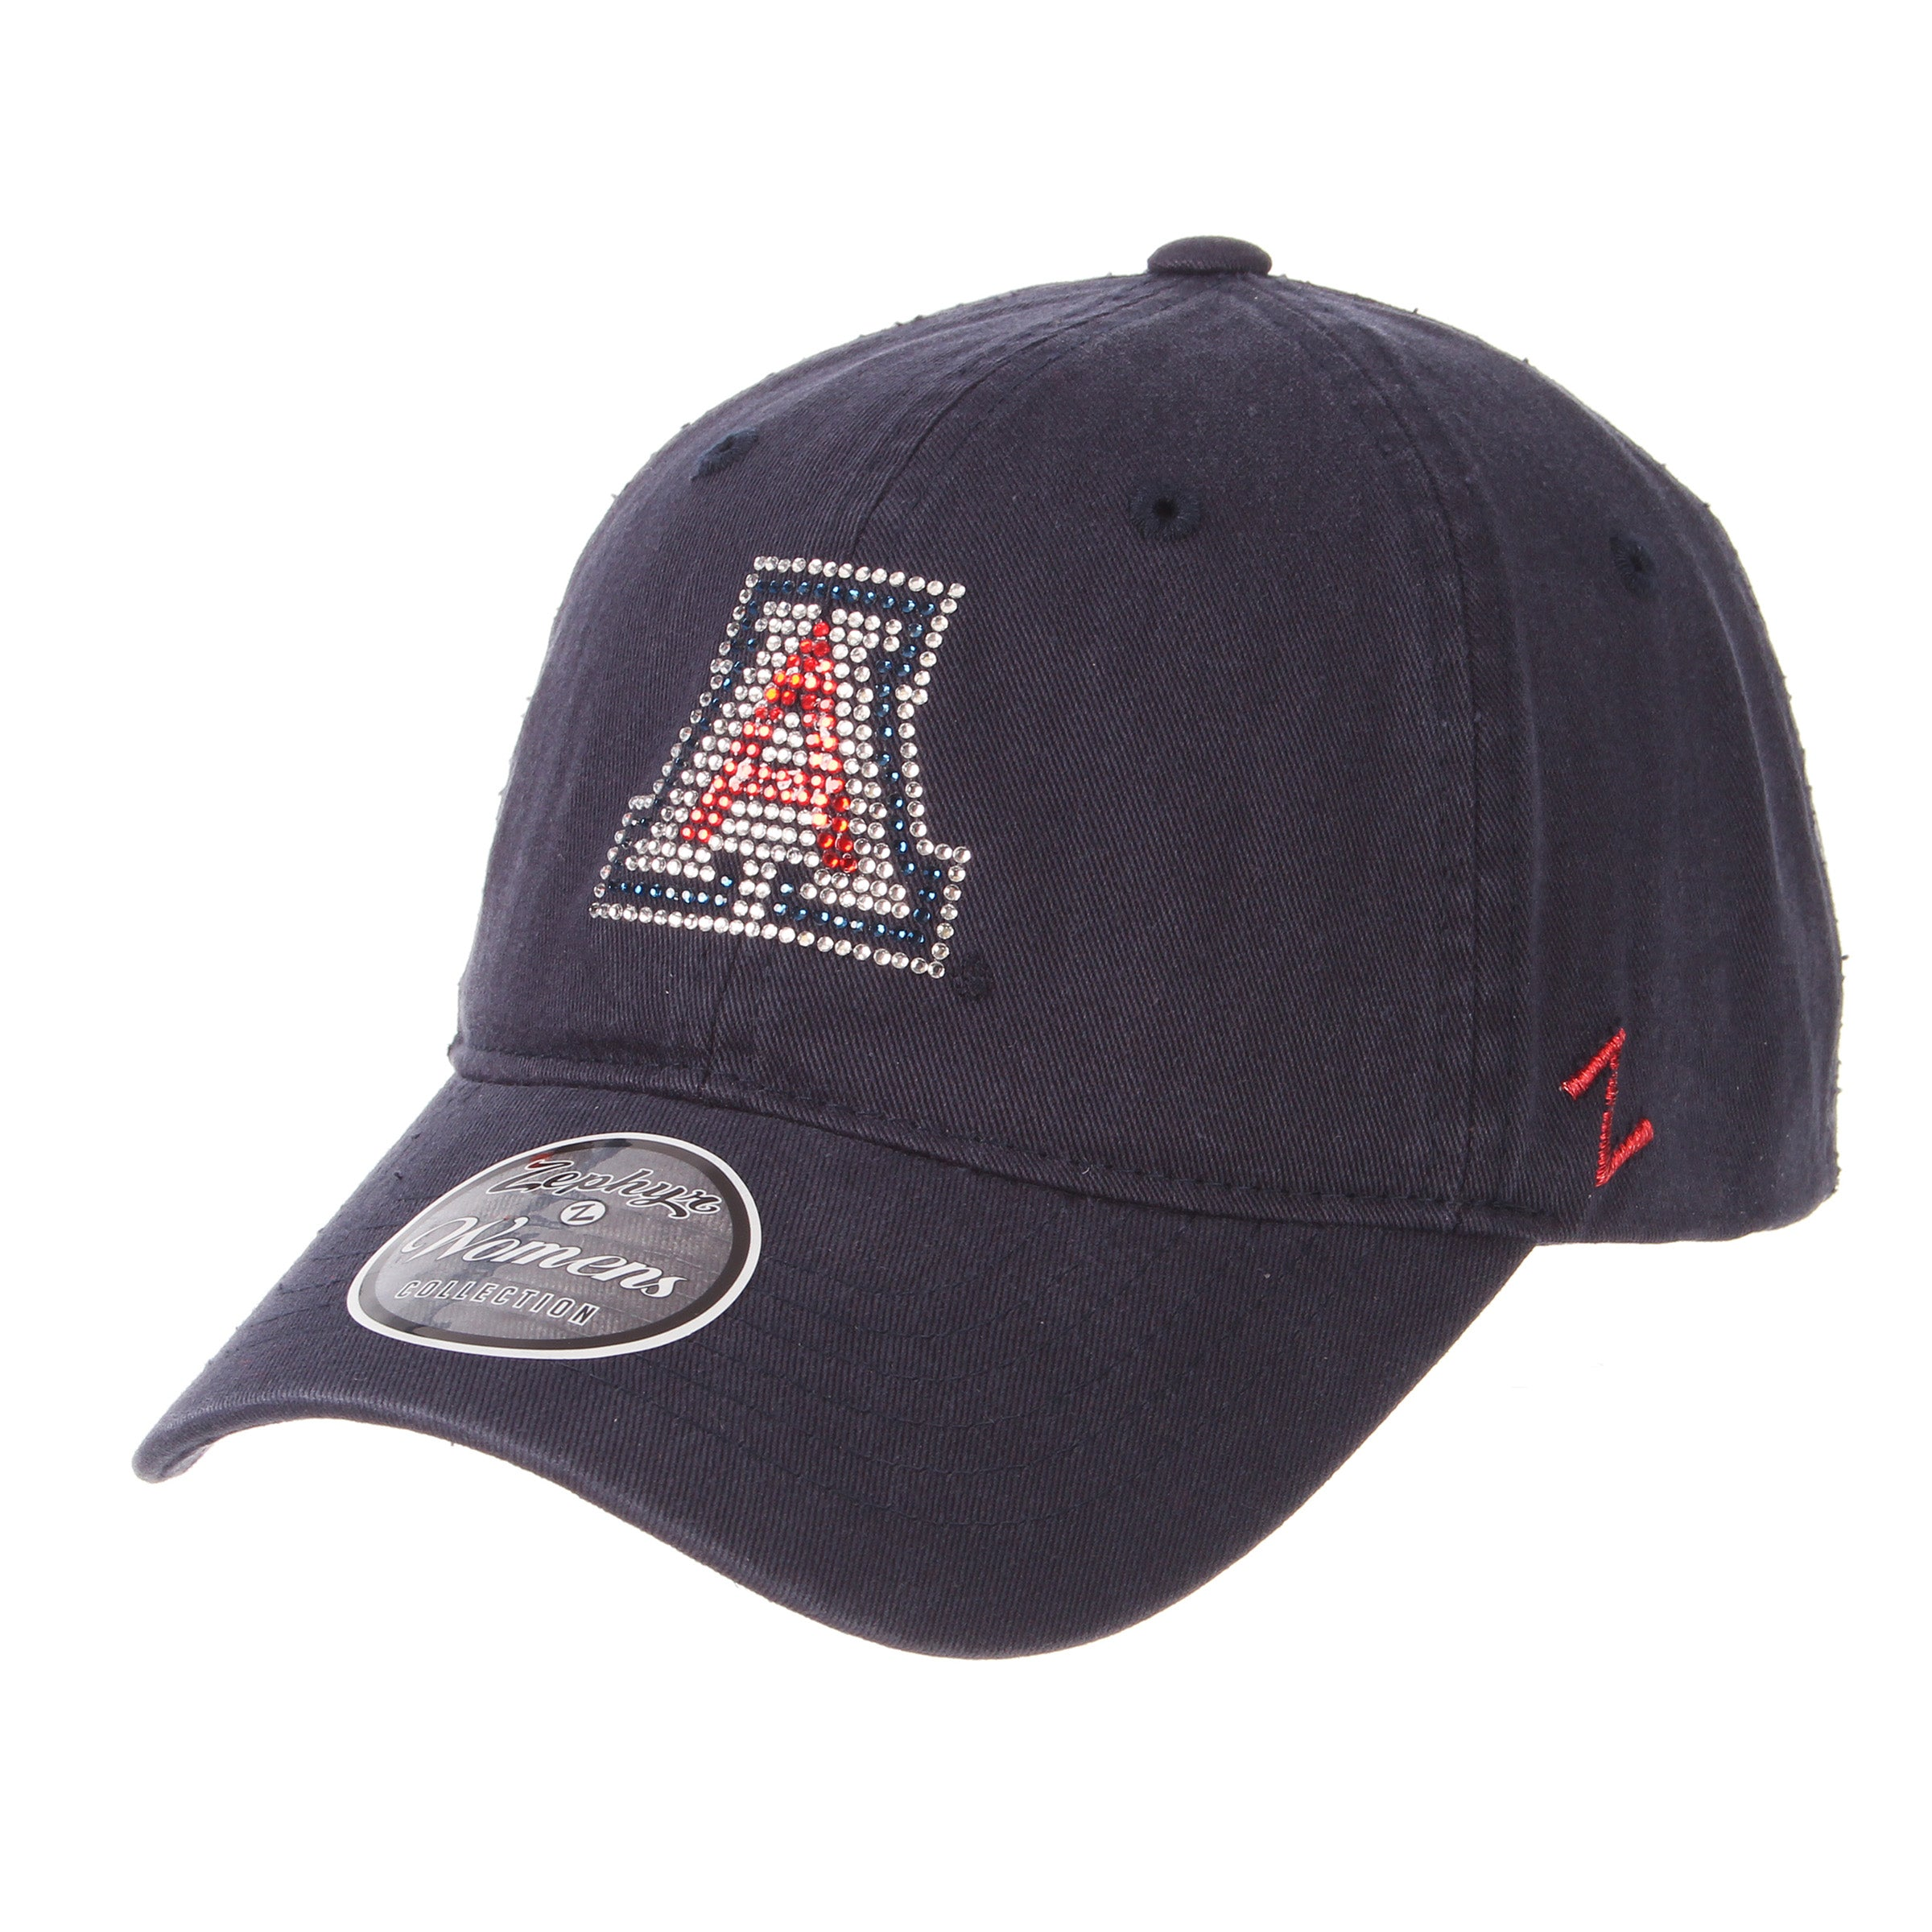 Arizona Wildcats Womens Girlfriend Rhinestone - Navy